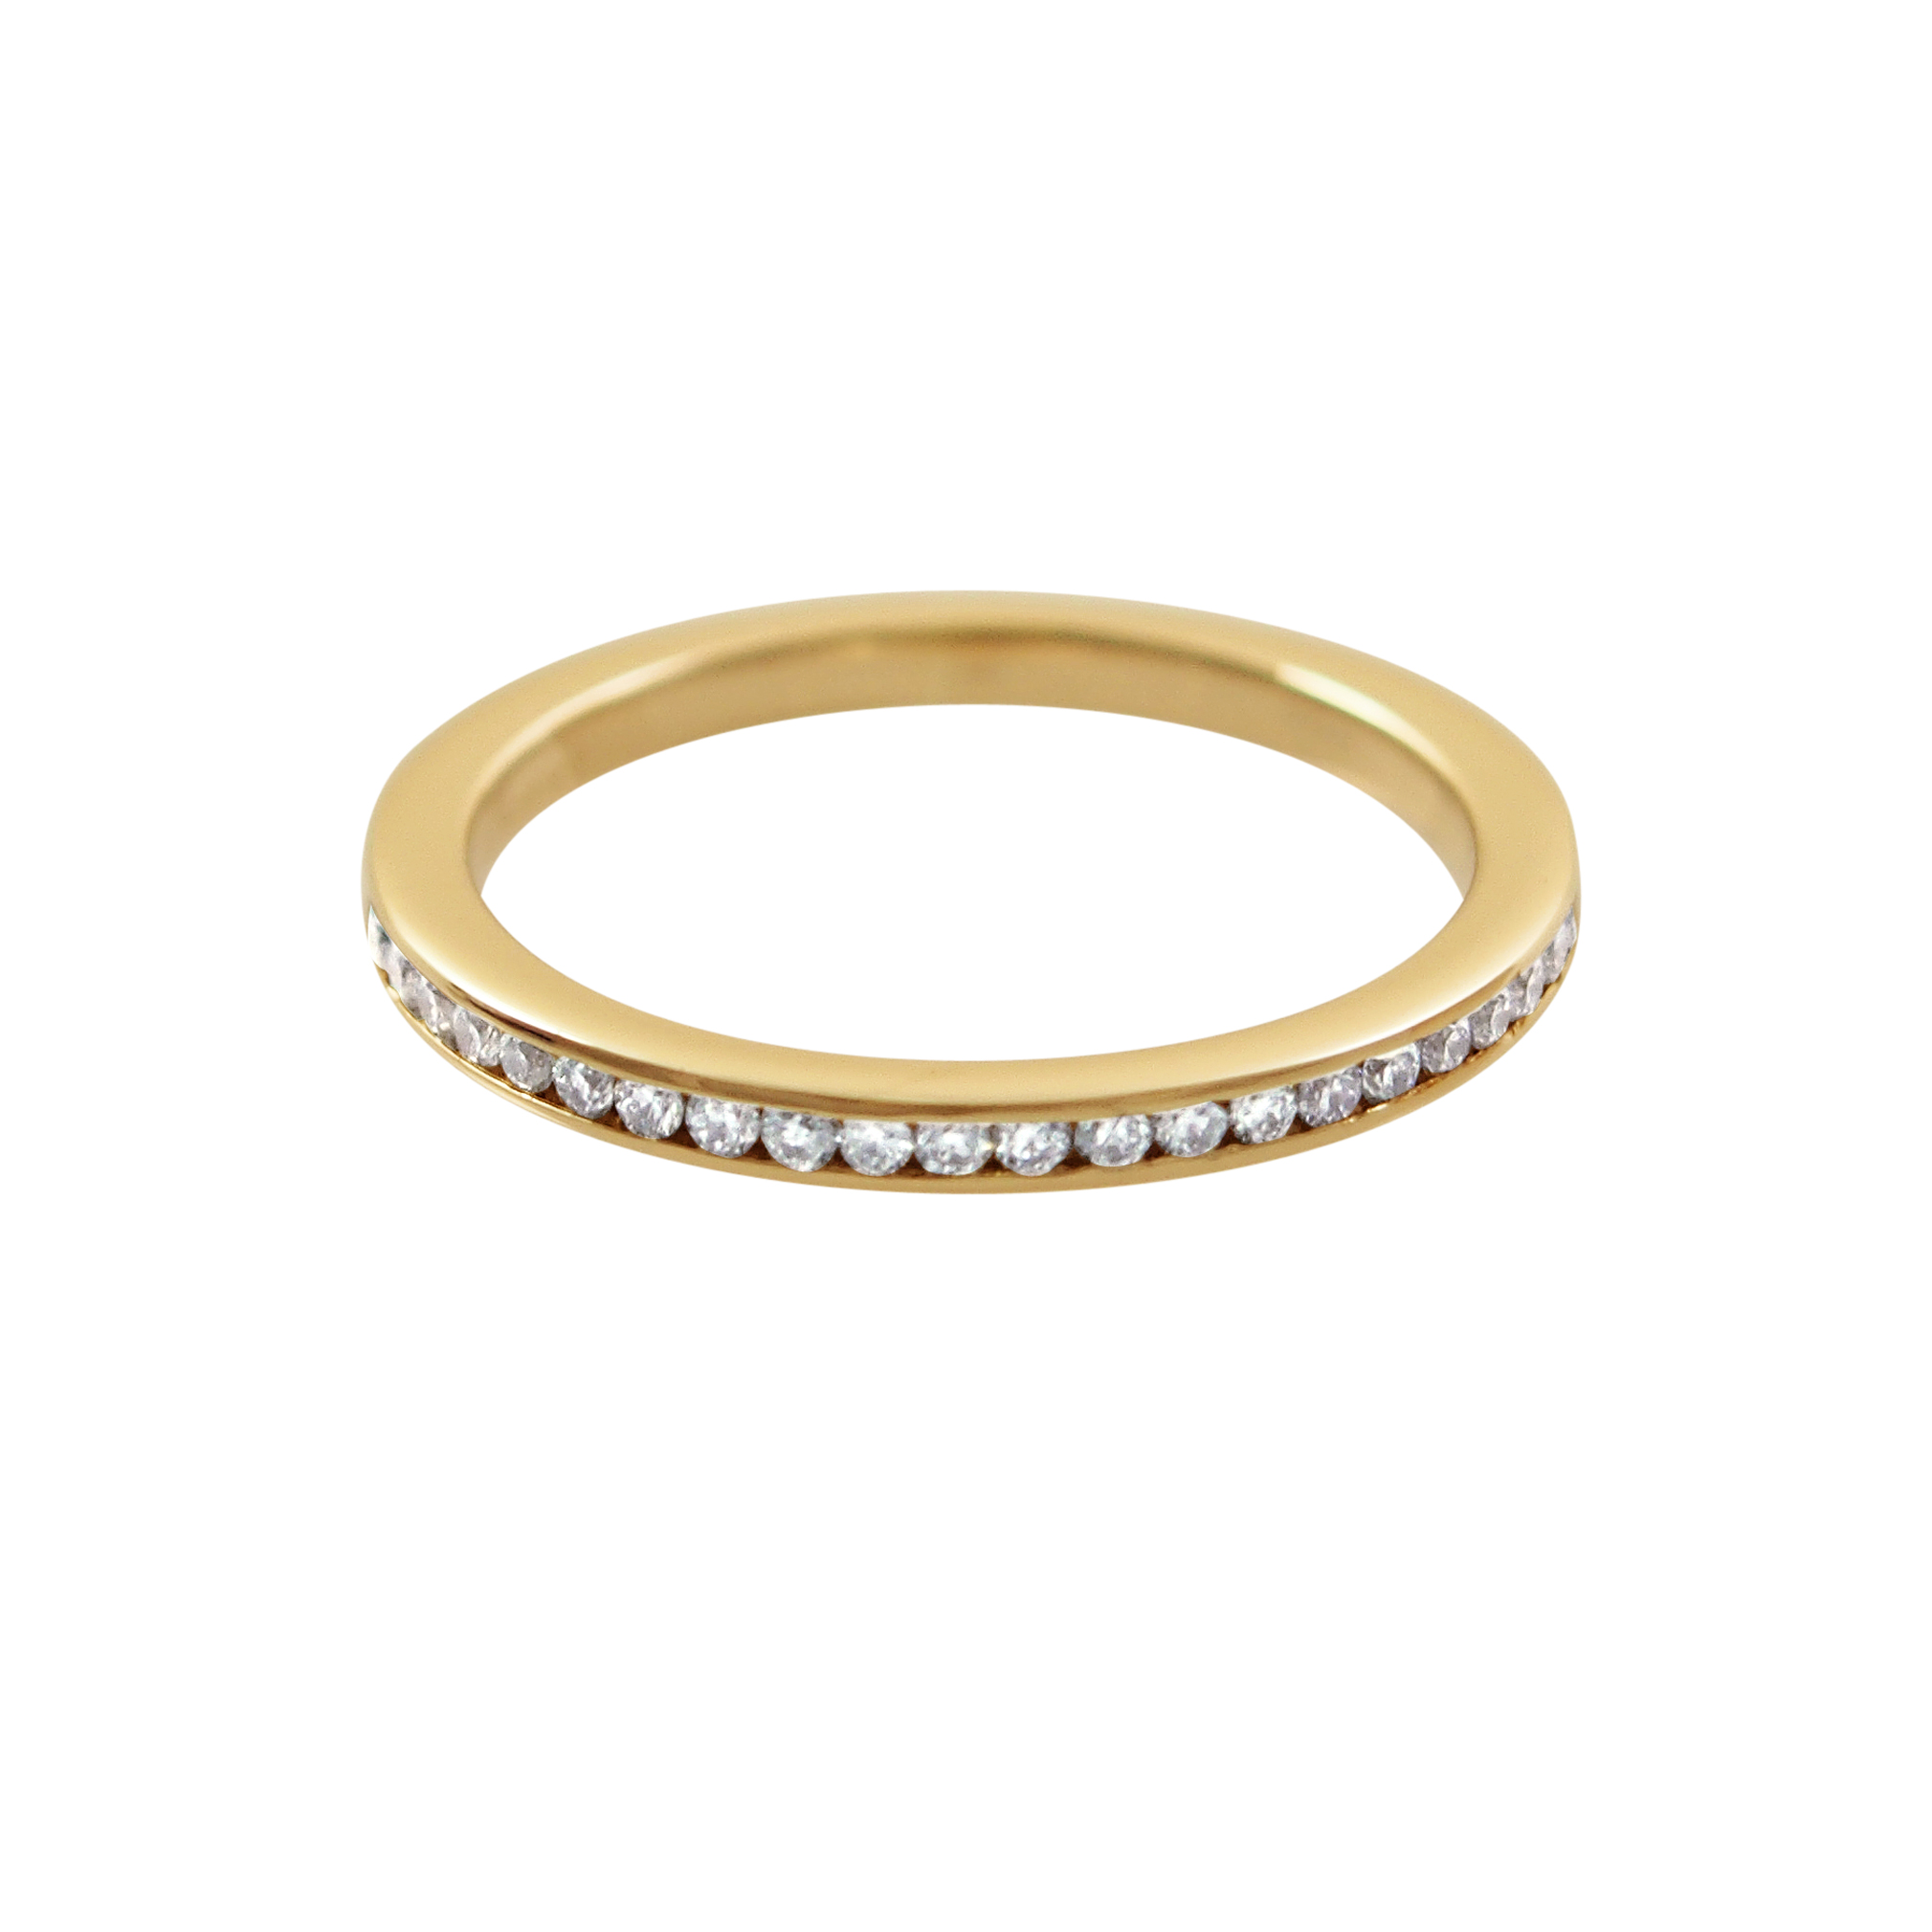 jewellery asp gold eternity cut diamond ring p yellow rings baguette